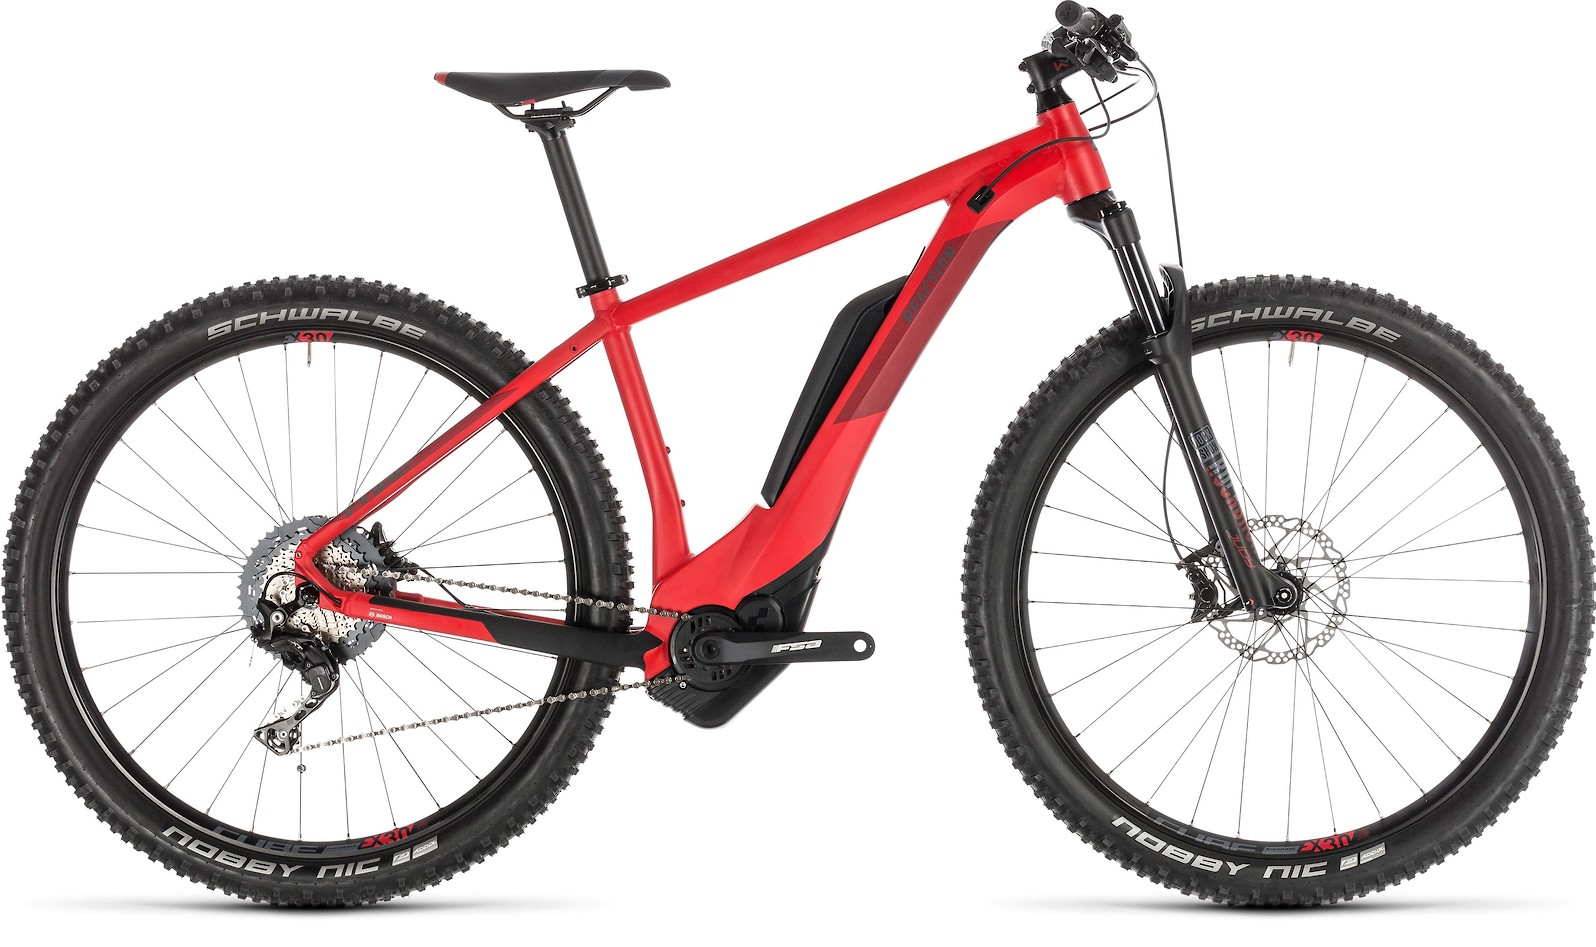 2019 Cube Reaction Hybrid Race 500 in red'n'red